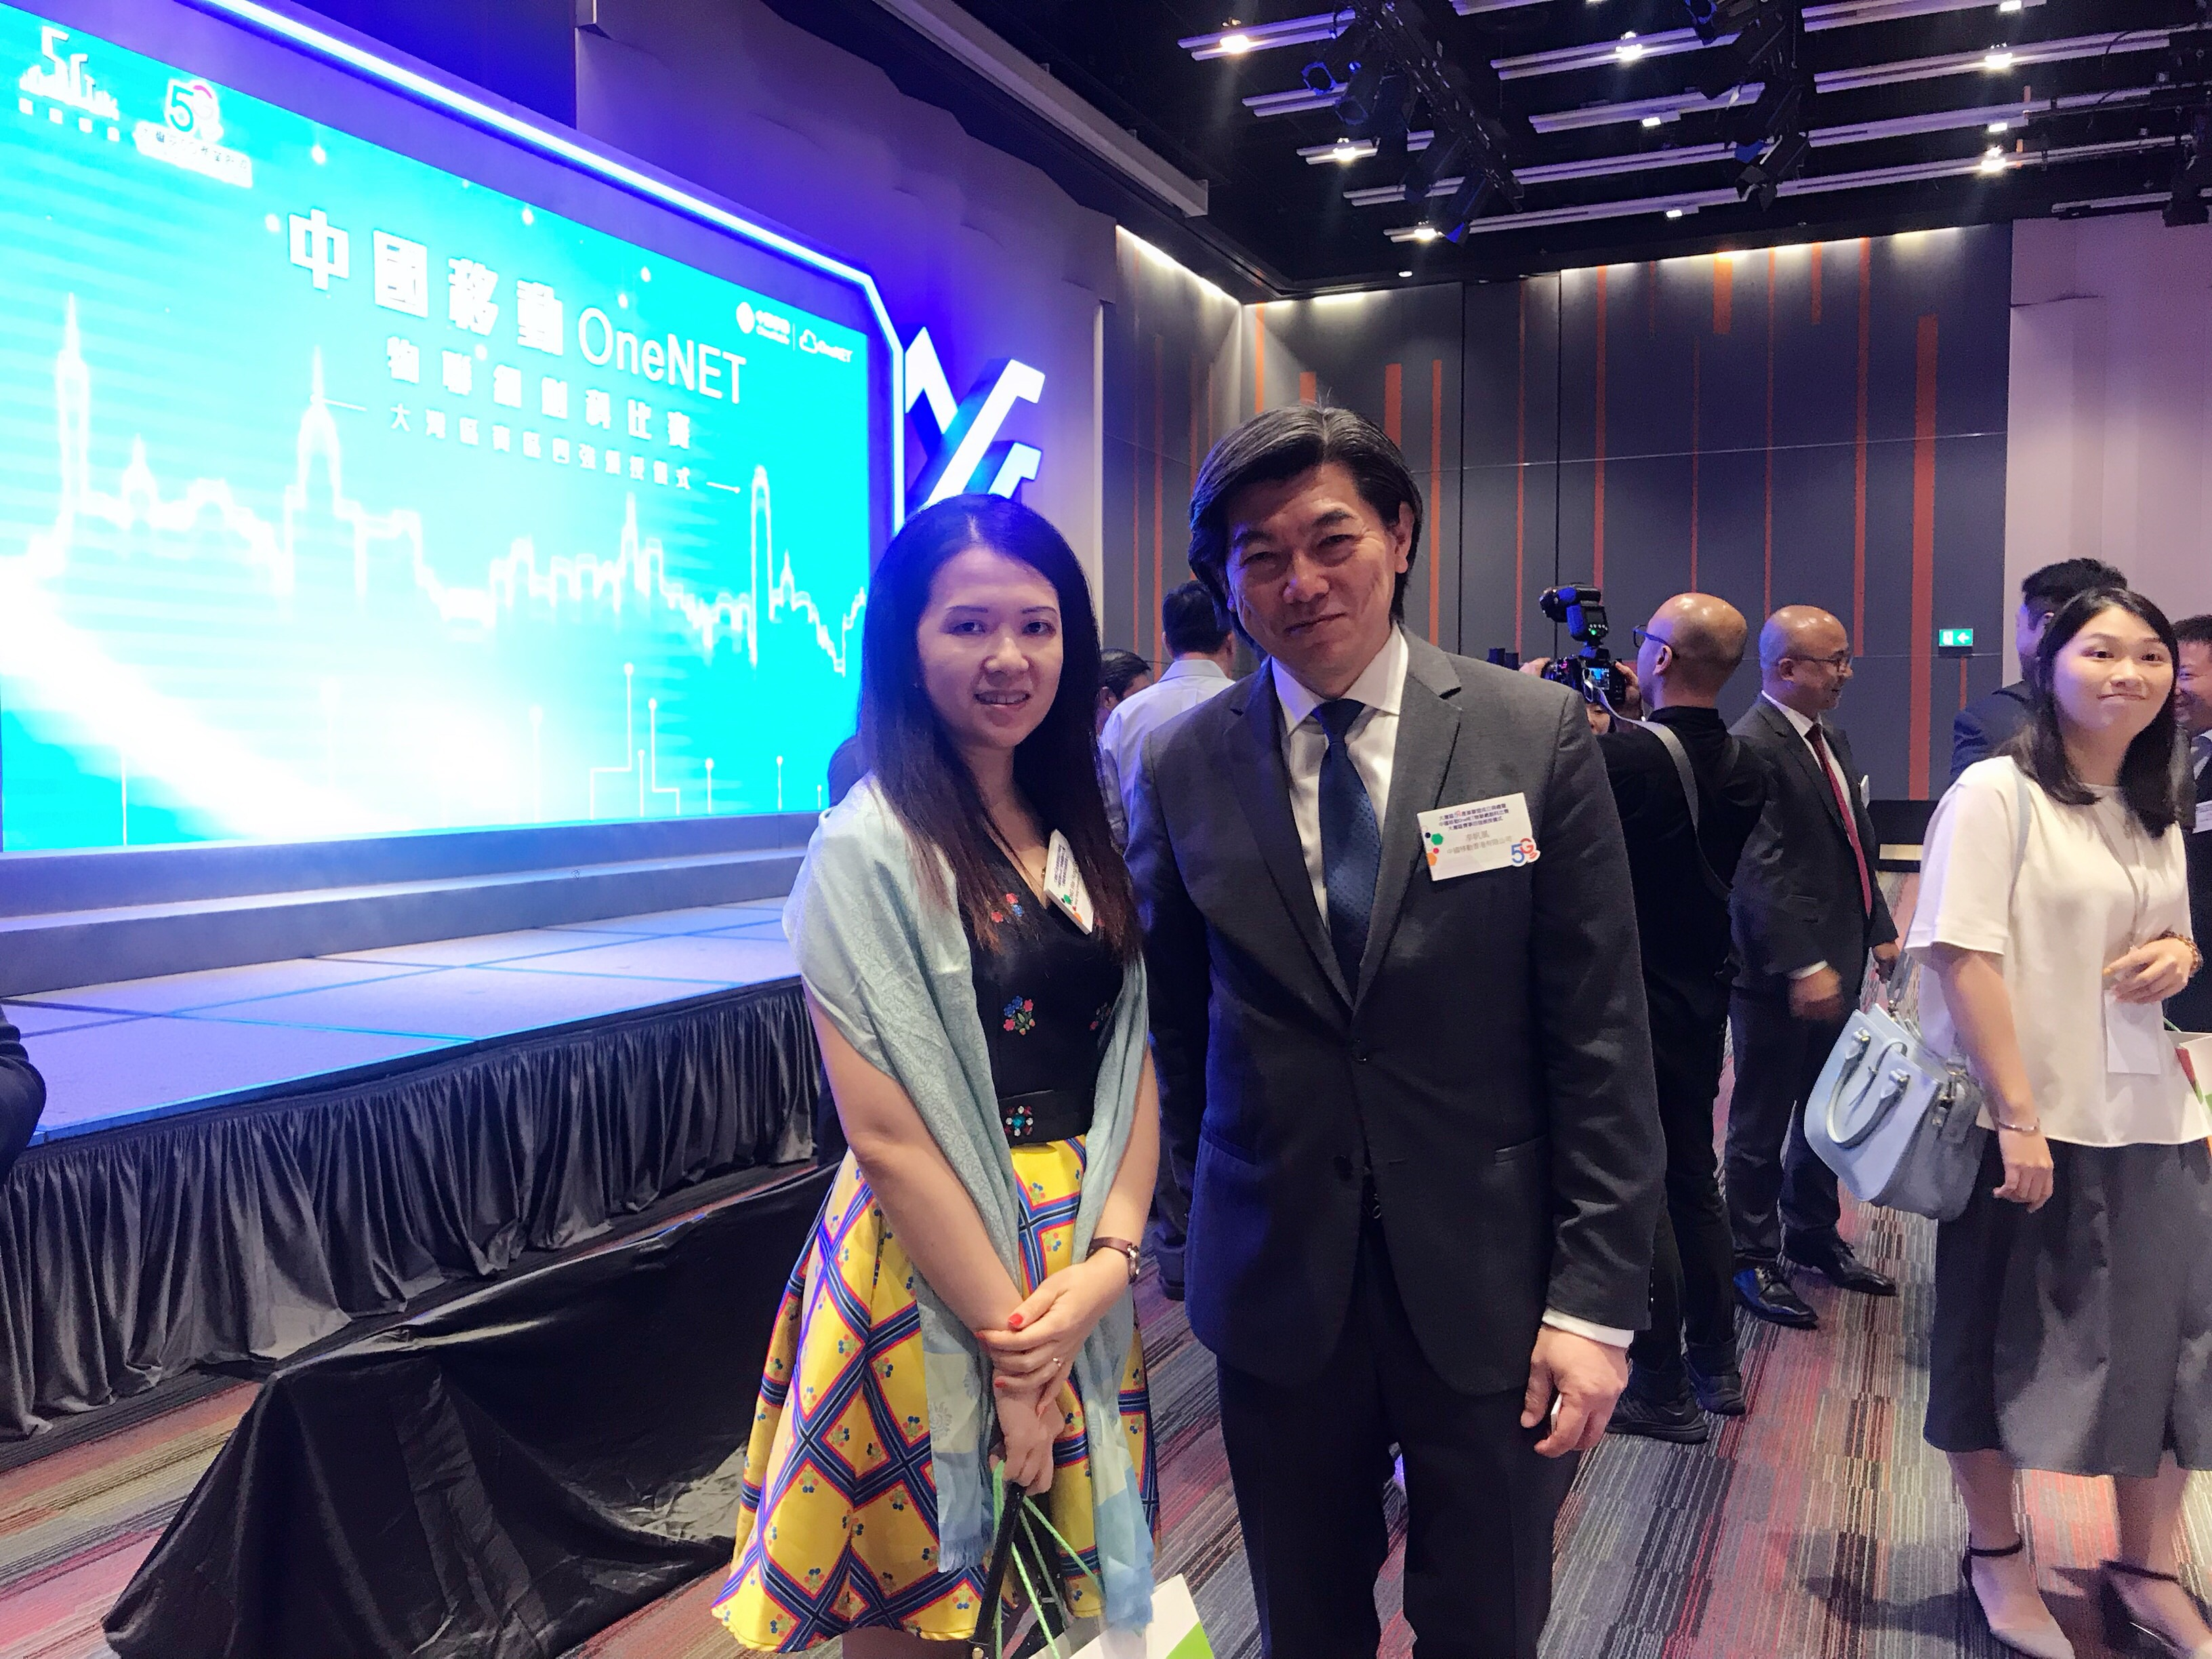 Dr. Collin Wong communicate with Mr. Sean Lee, Founding Chairman of The GBA 5G Industry Alliance and Director & CEO of China Mobile Hong Kong, in the ceremony